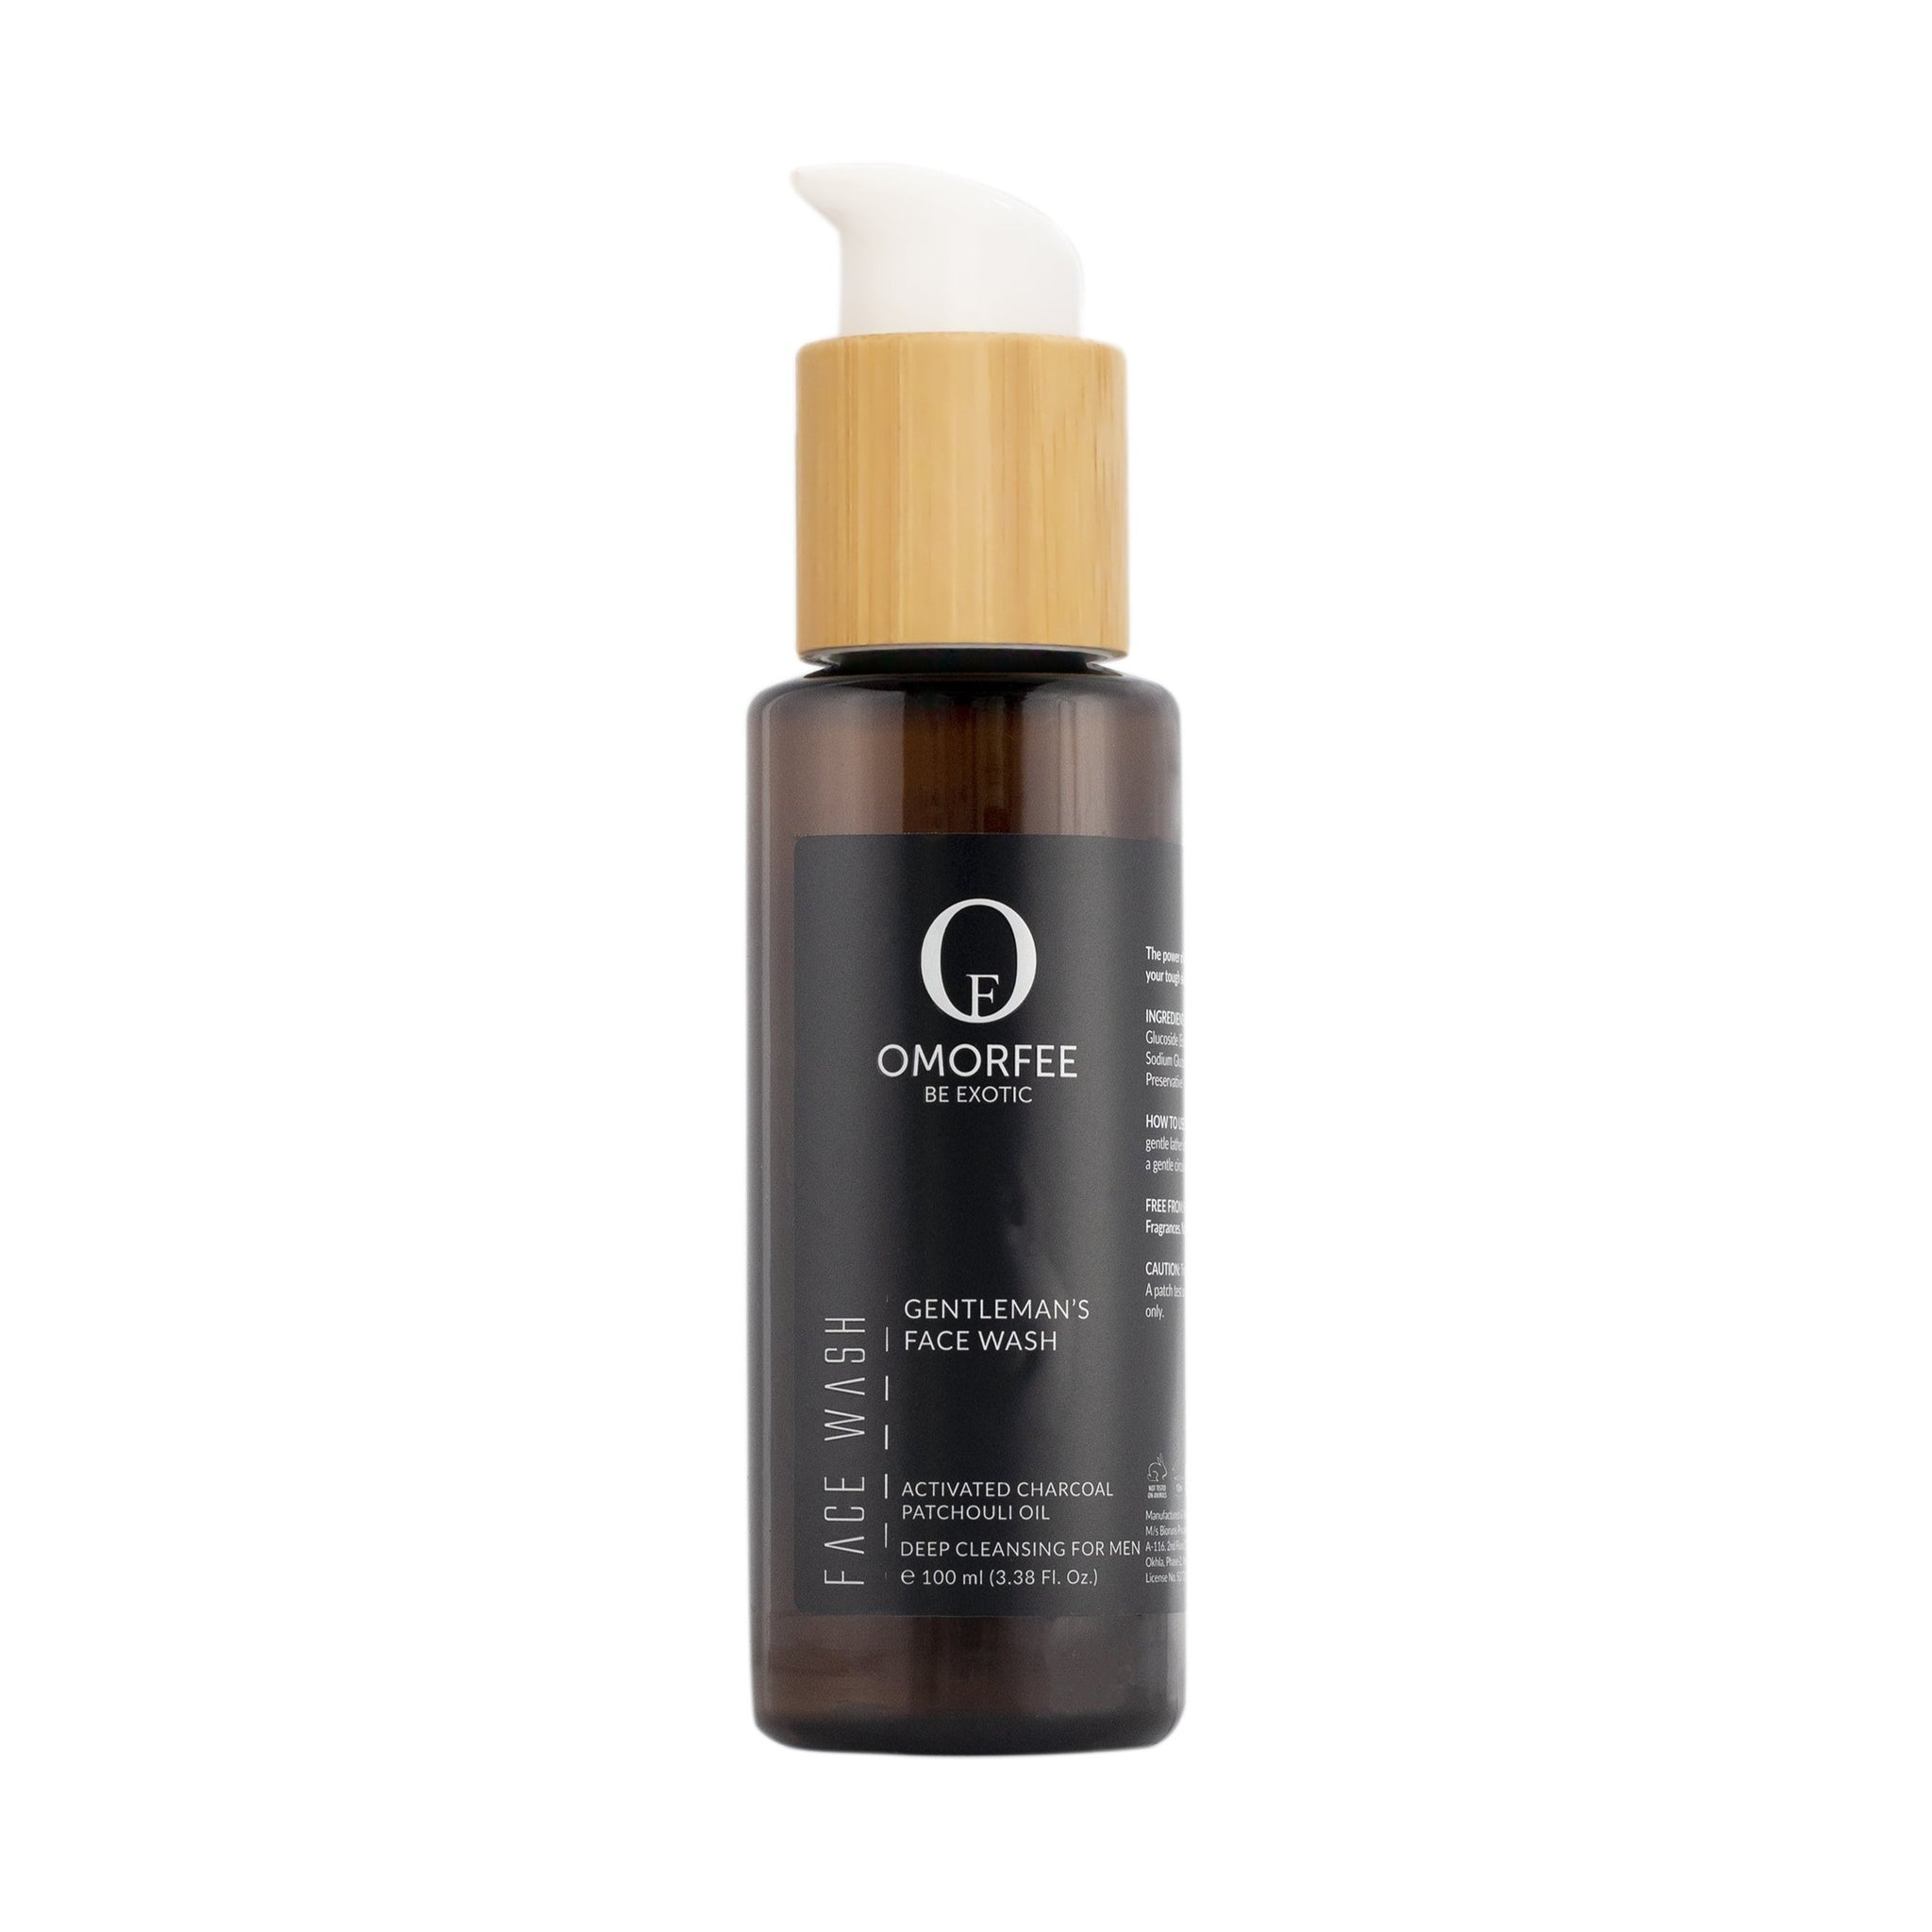 Omorfee Organic and natural face wash with activated charcoal for deep cleansing. Daily face wash for men. Mens face wash for deep cleansing.